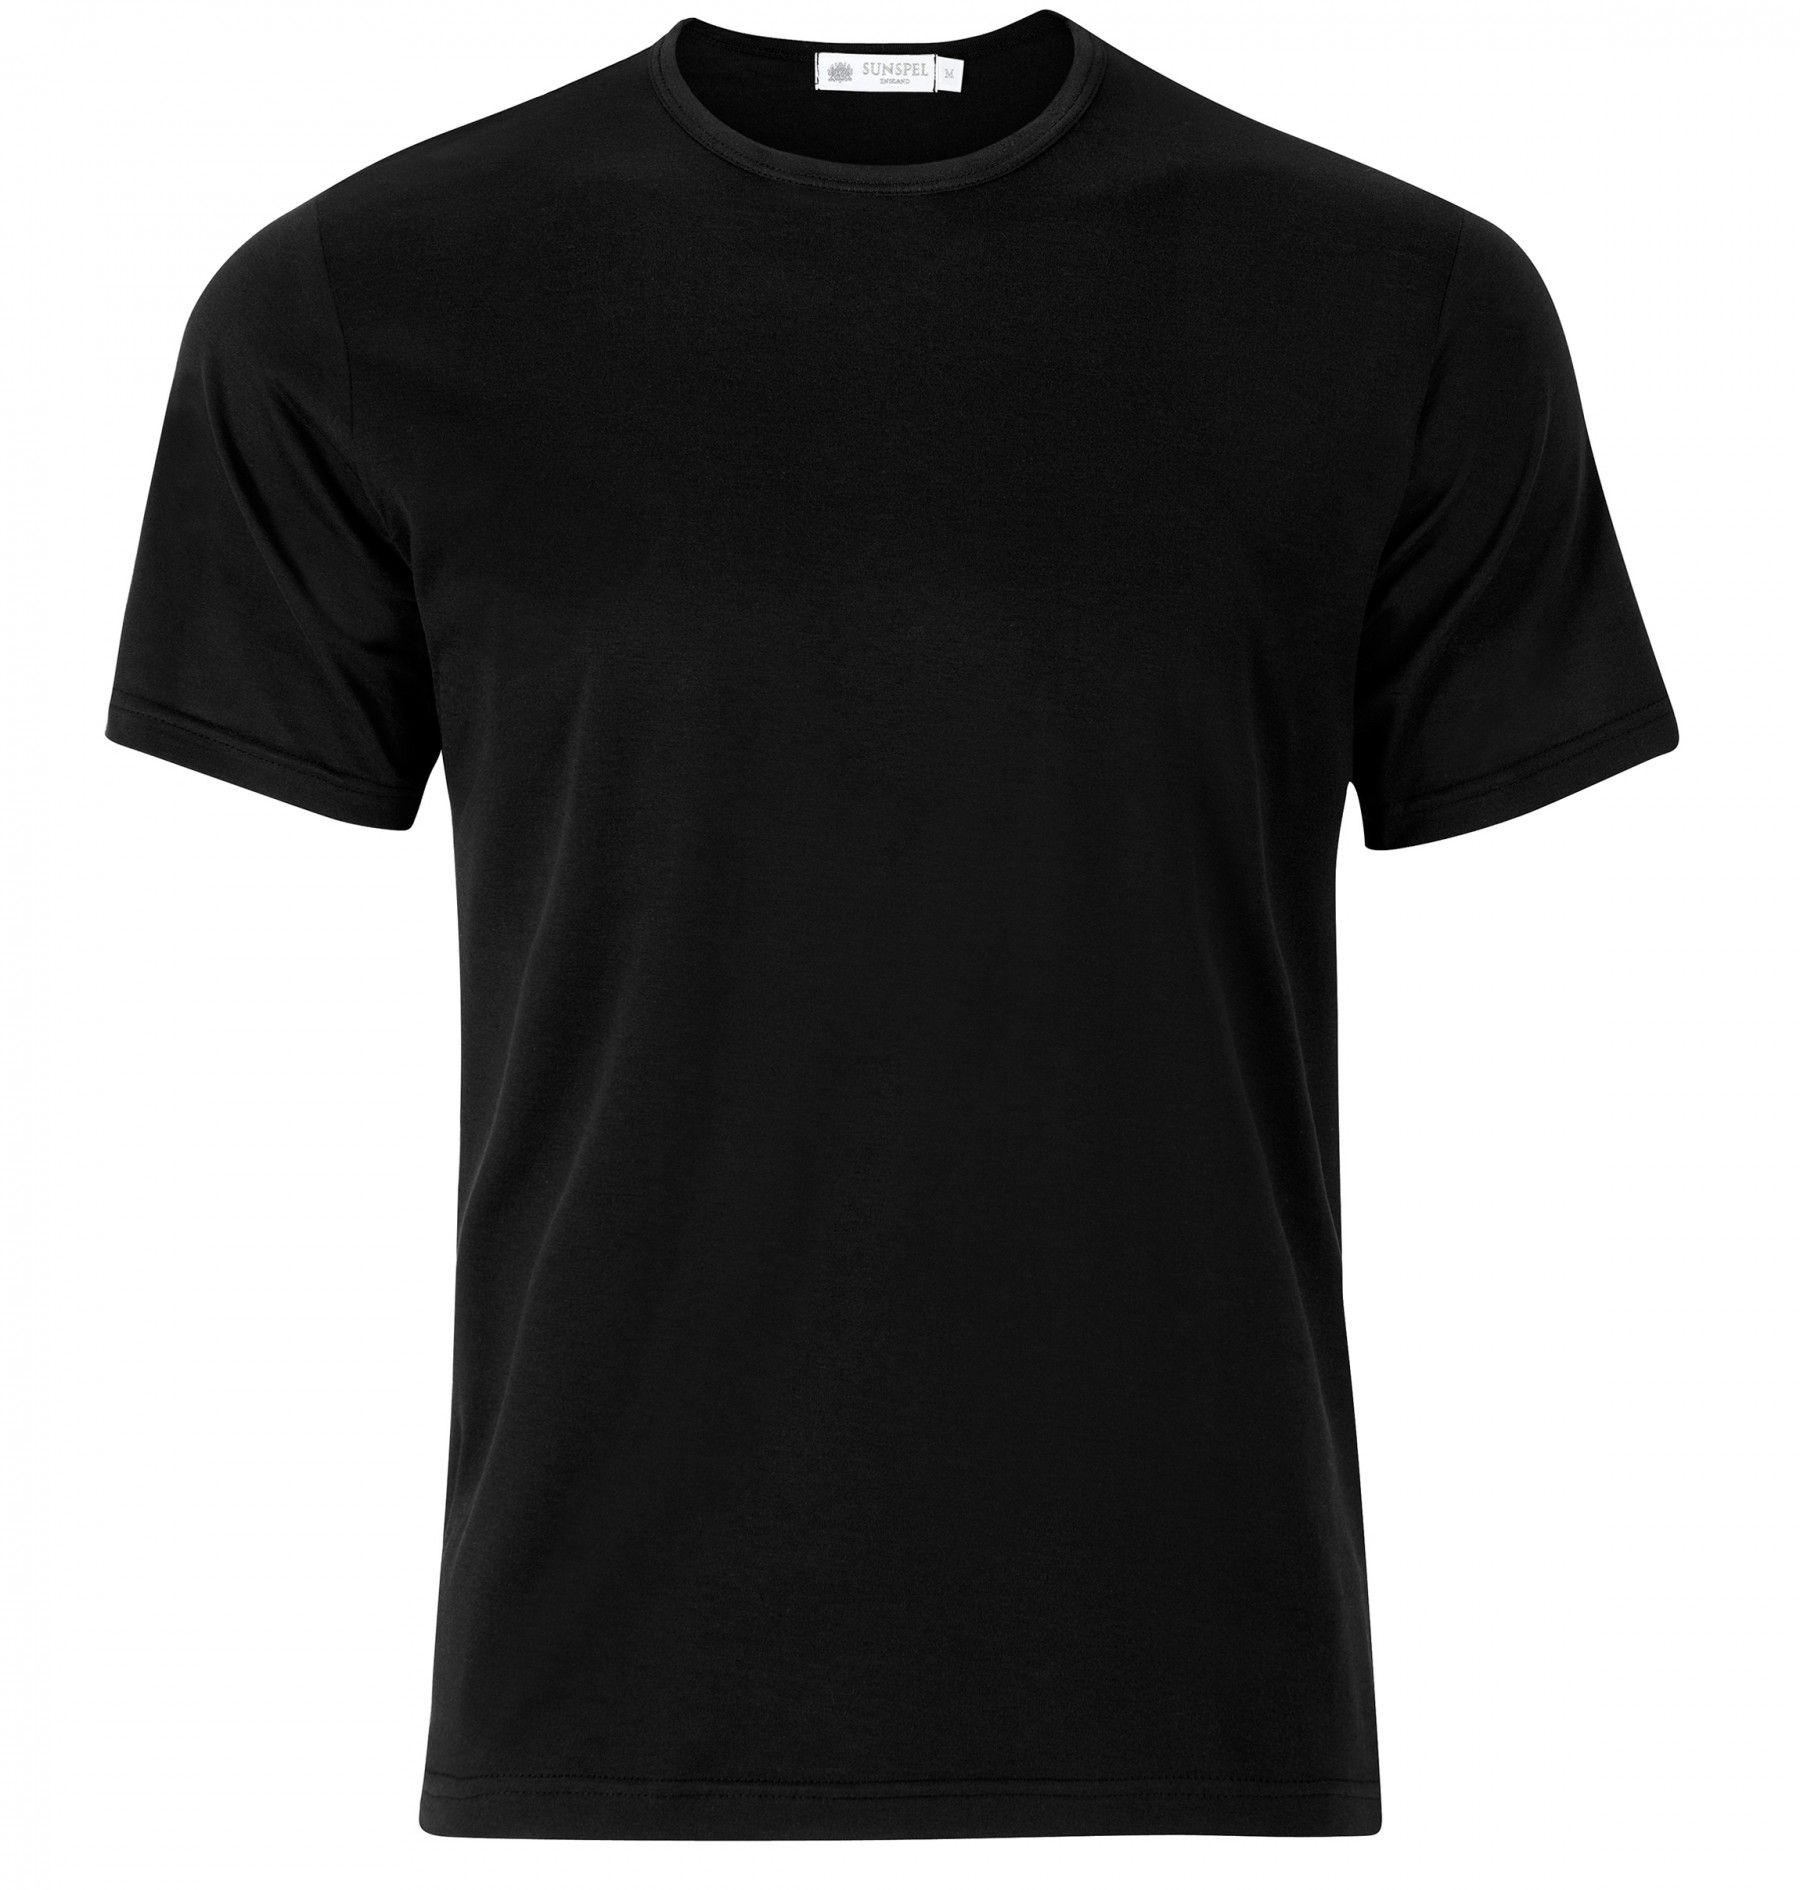 black shirts menu0027s superfine cotton t-shirt in black XFCOSQJ